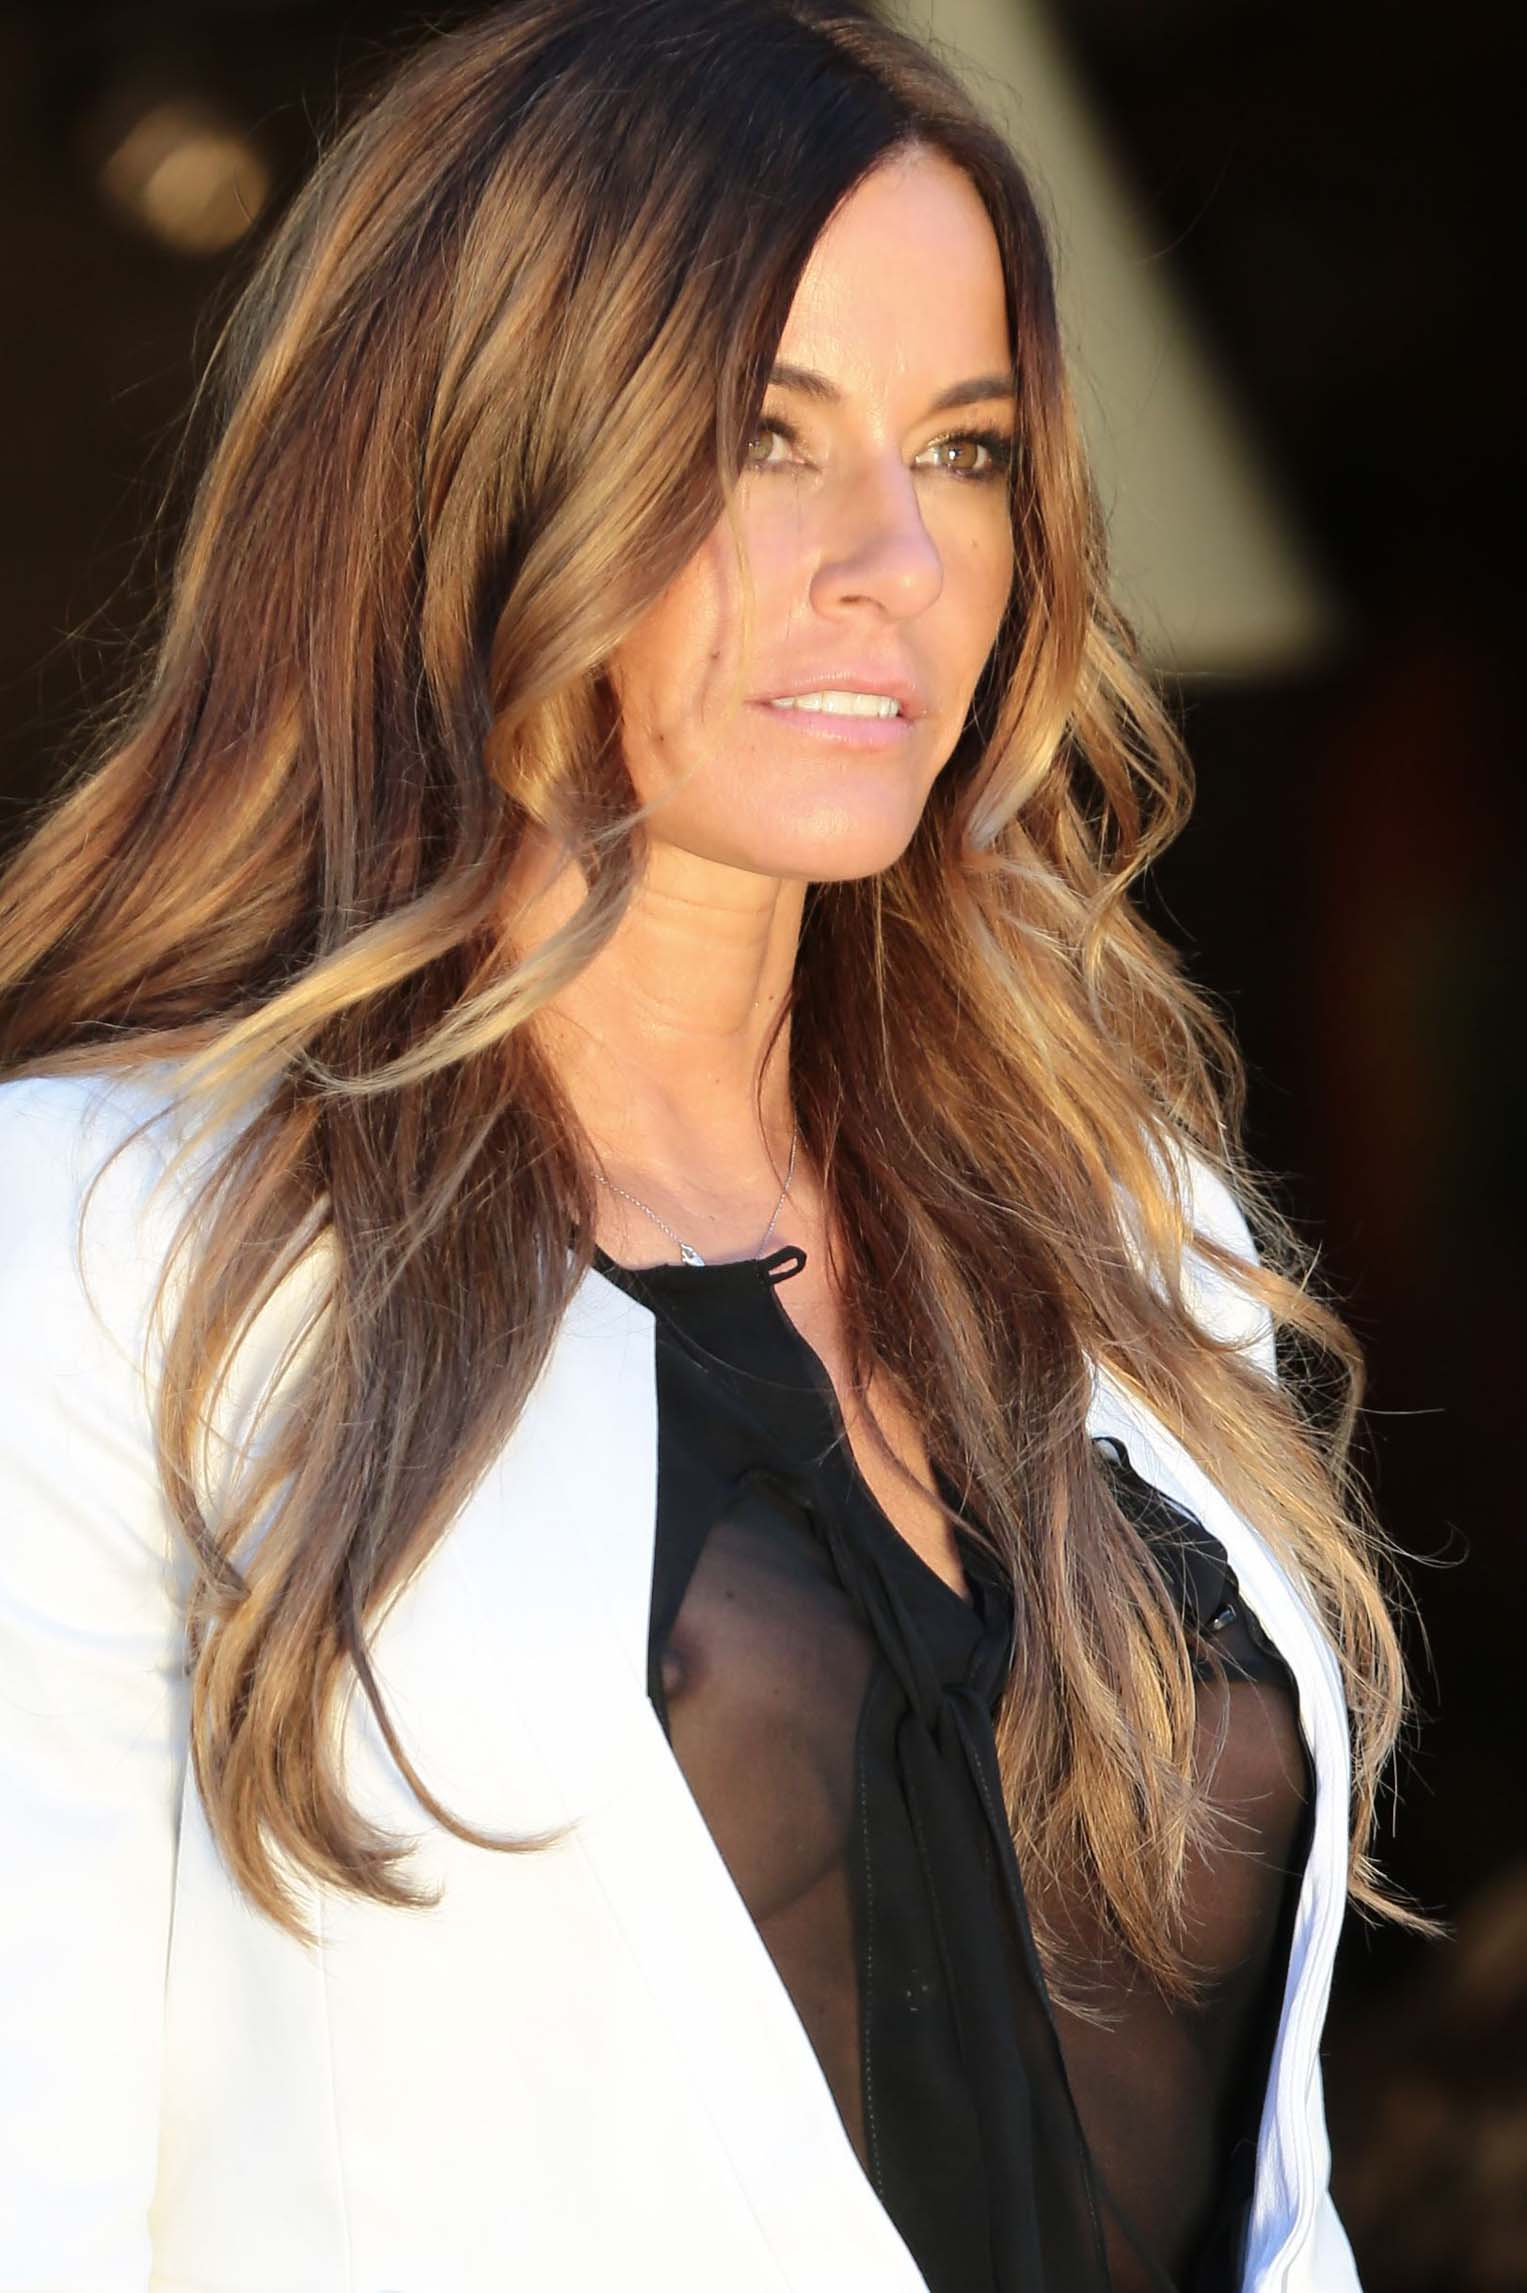 Kelly Bensimon tits